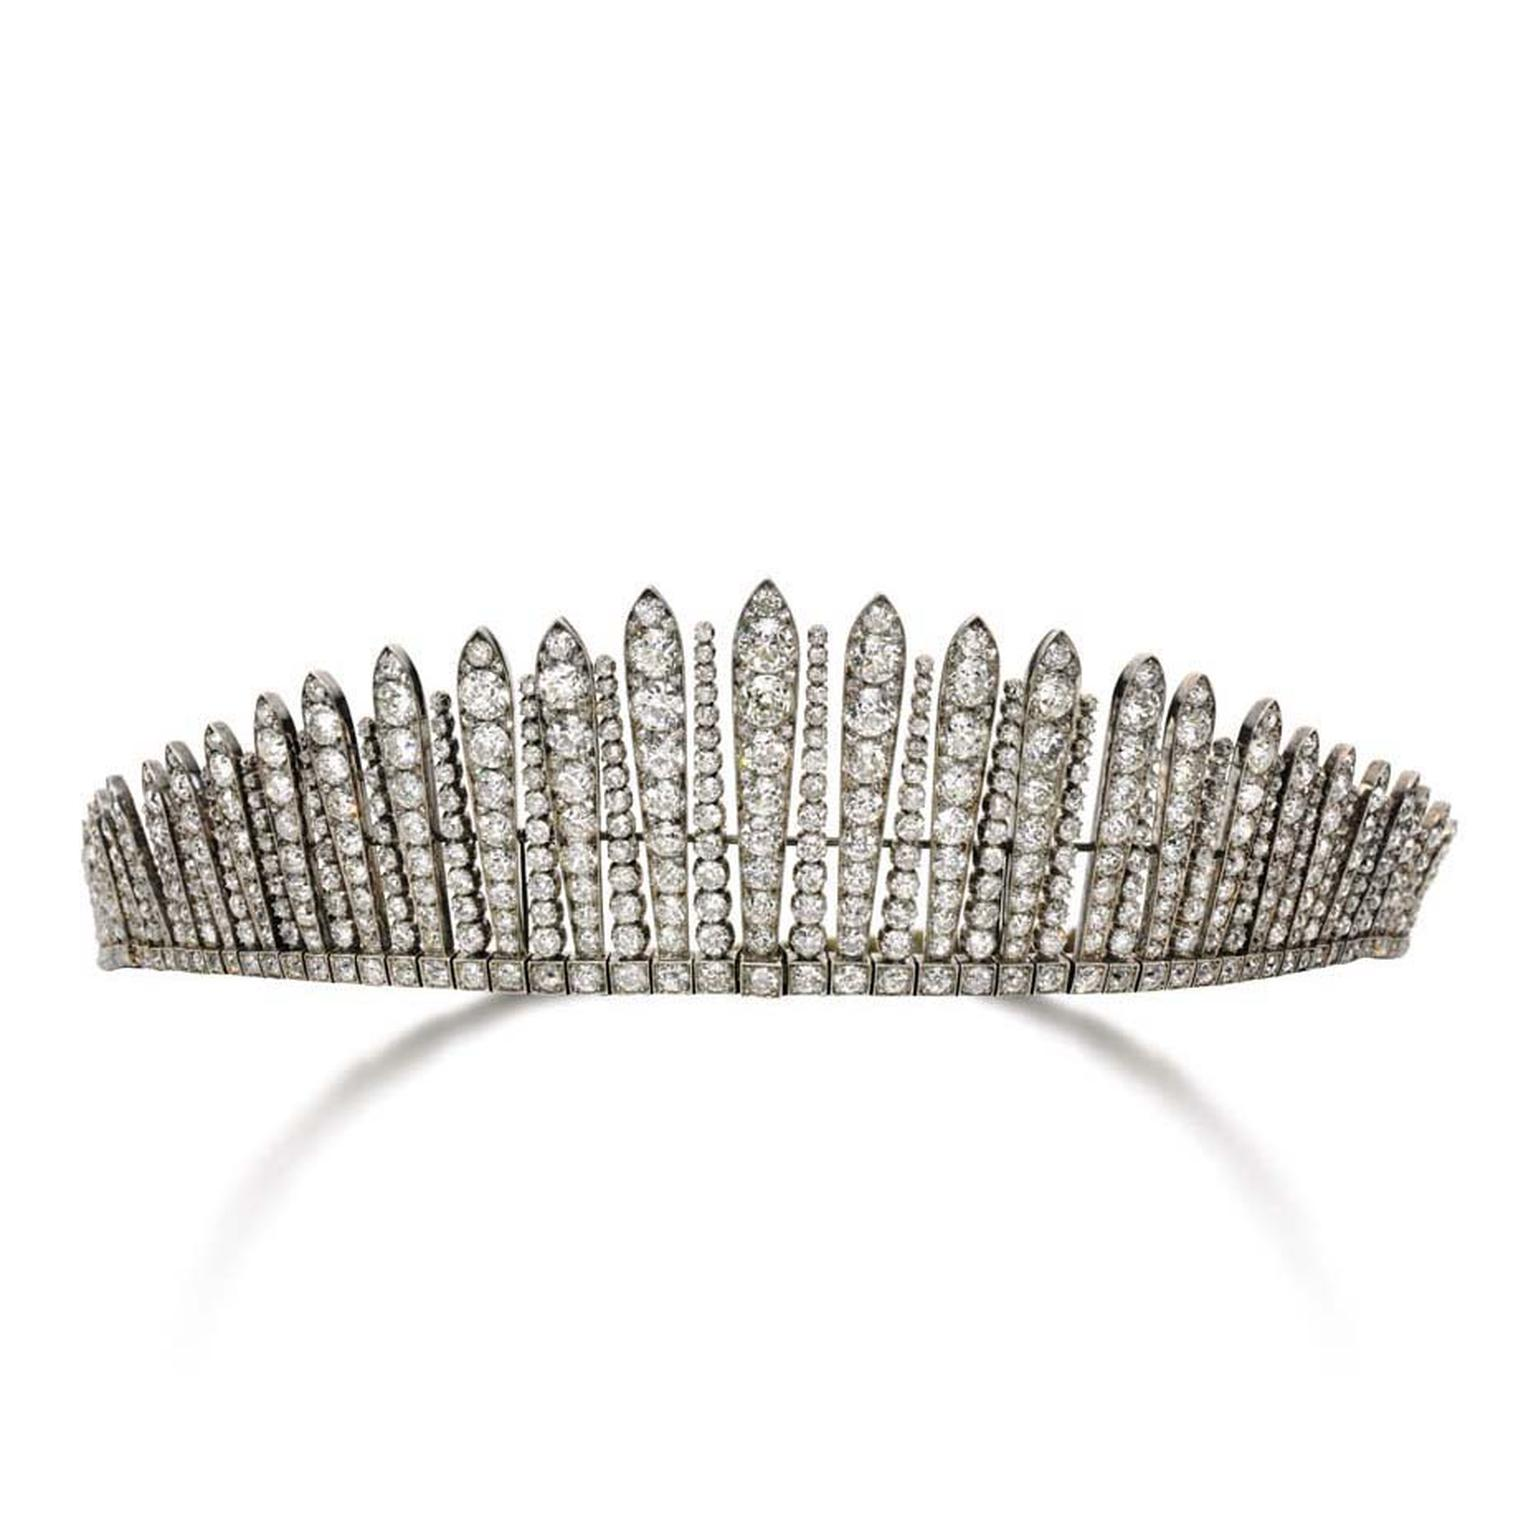 This diamond tiara, which was accompanied by a matching diamond necklace, is thought to be from around 1880 and sold for more than $480,000 at the Sotheby's sale in Geneva.